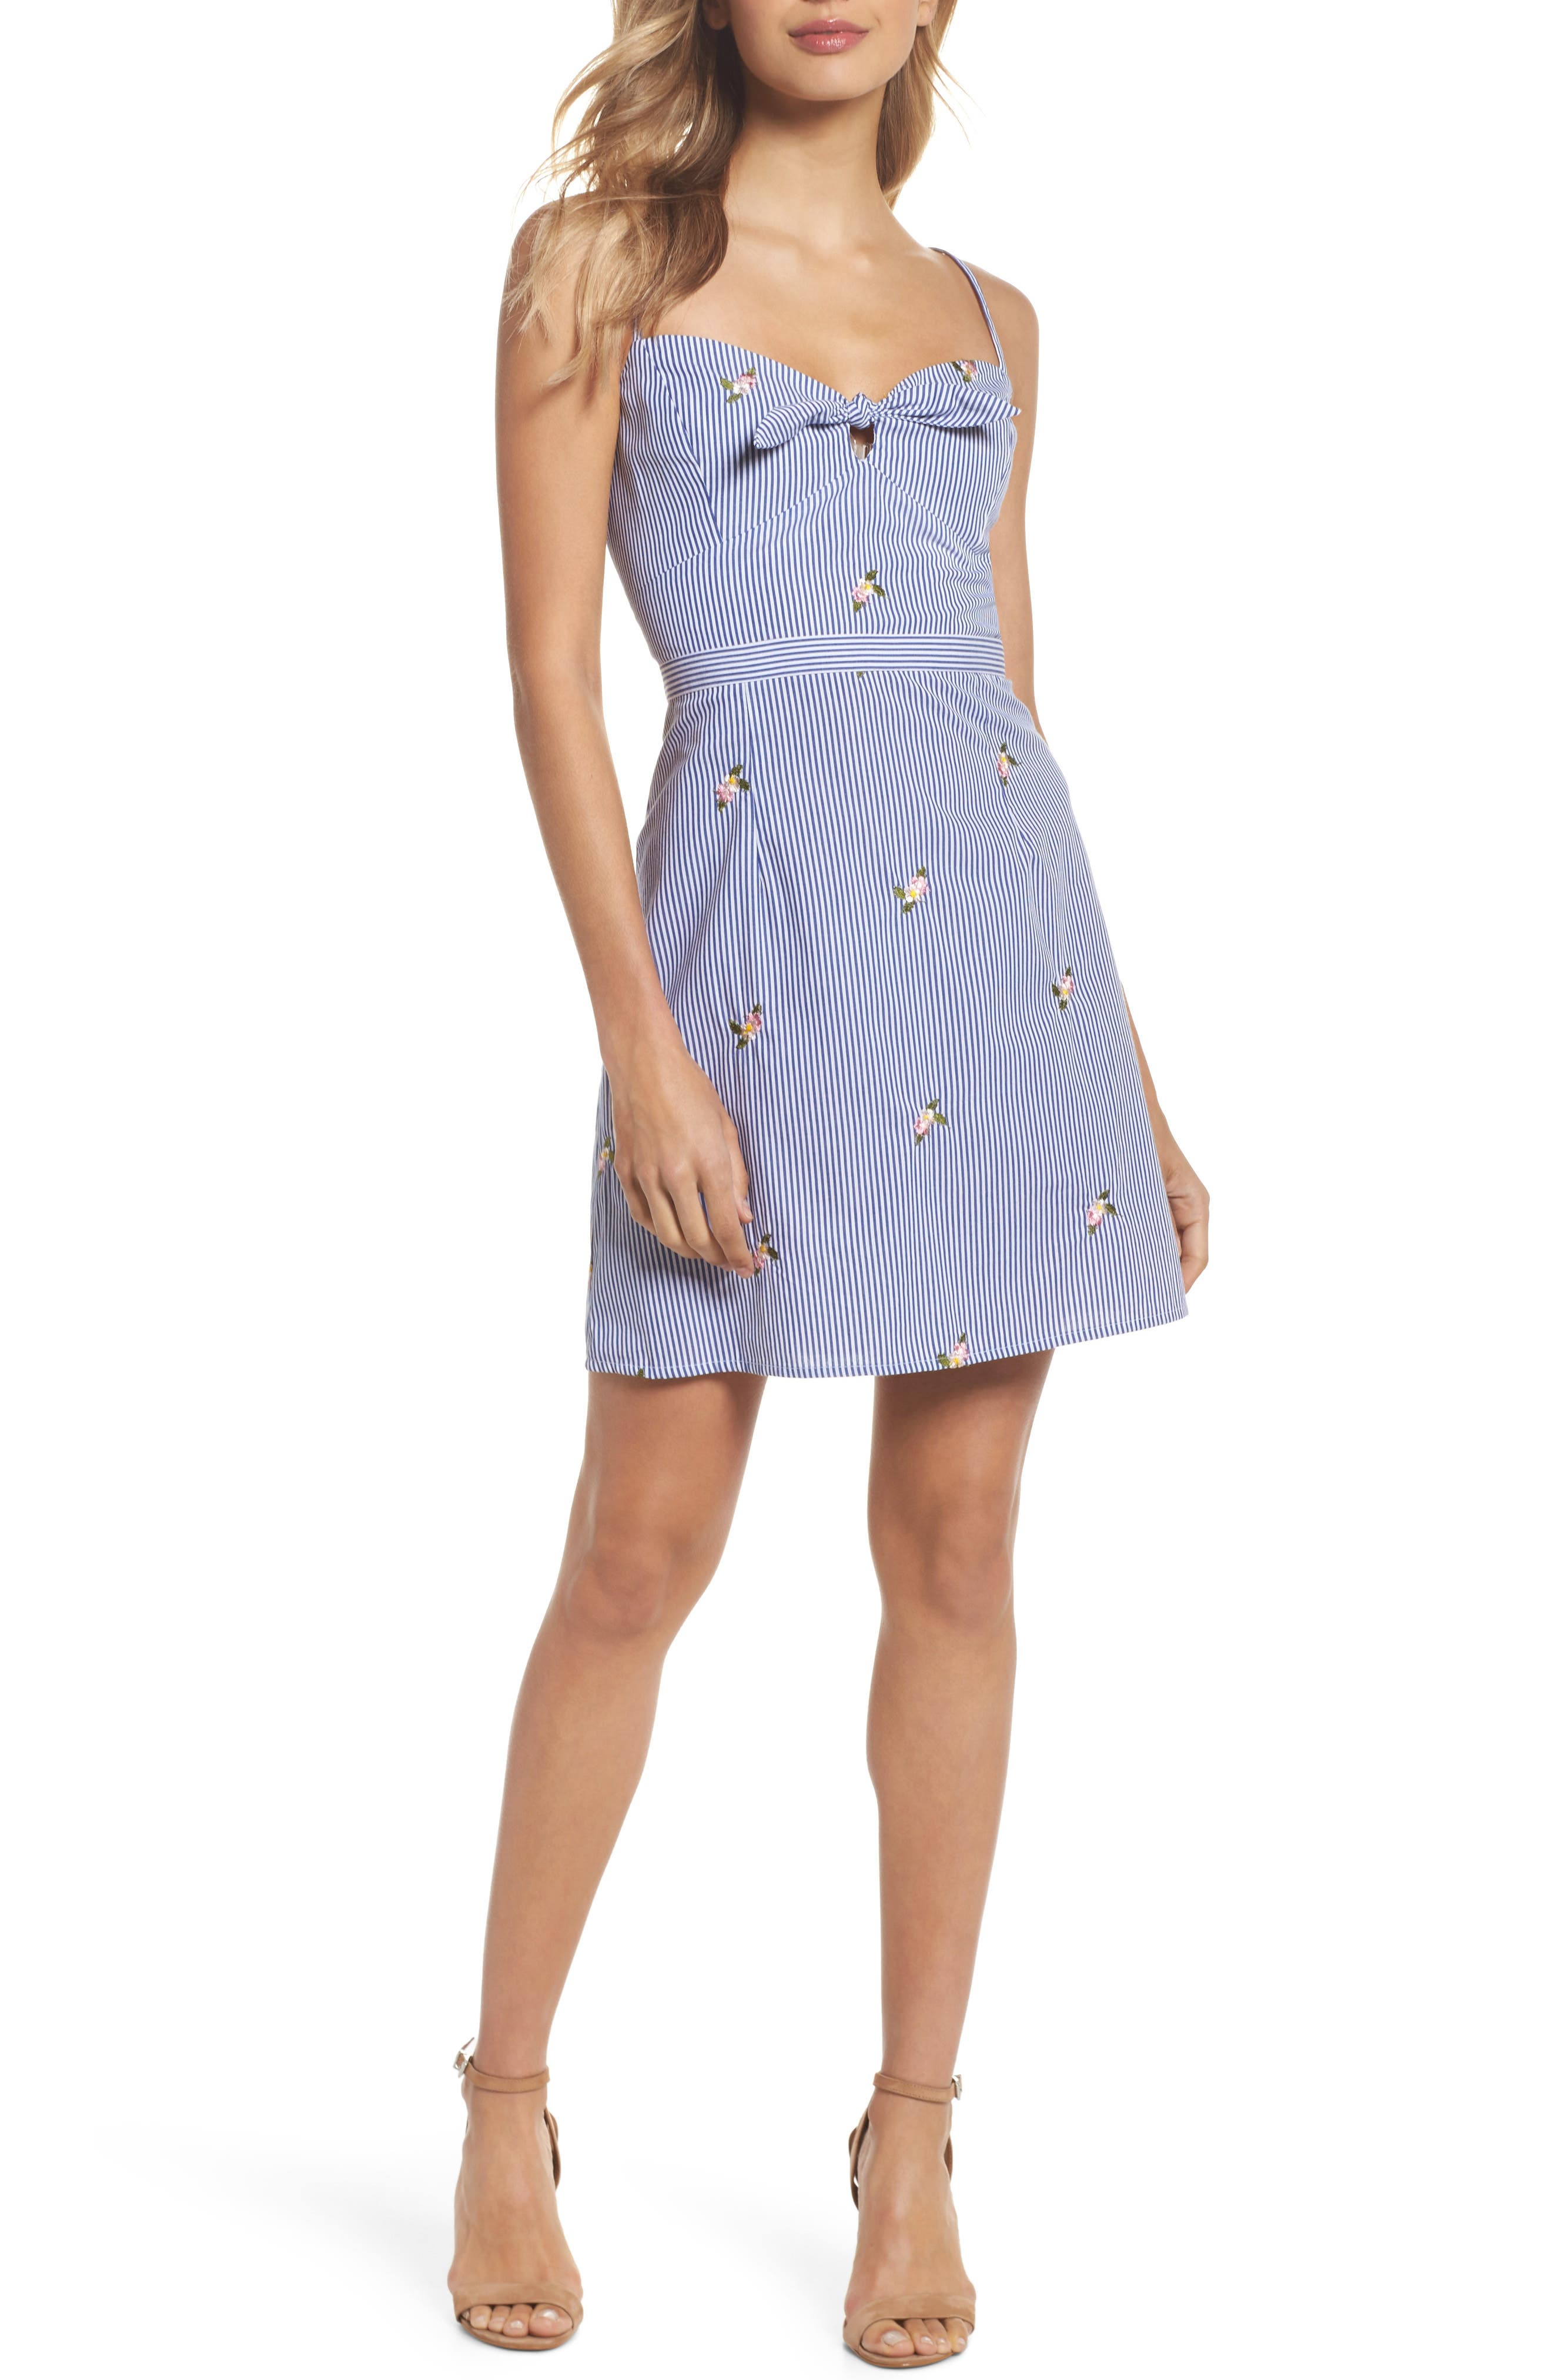 CLOVER AND SLOANE,                             Stripe Bow Front Sundress,                             Main thumbnail 1, color,                             461